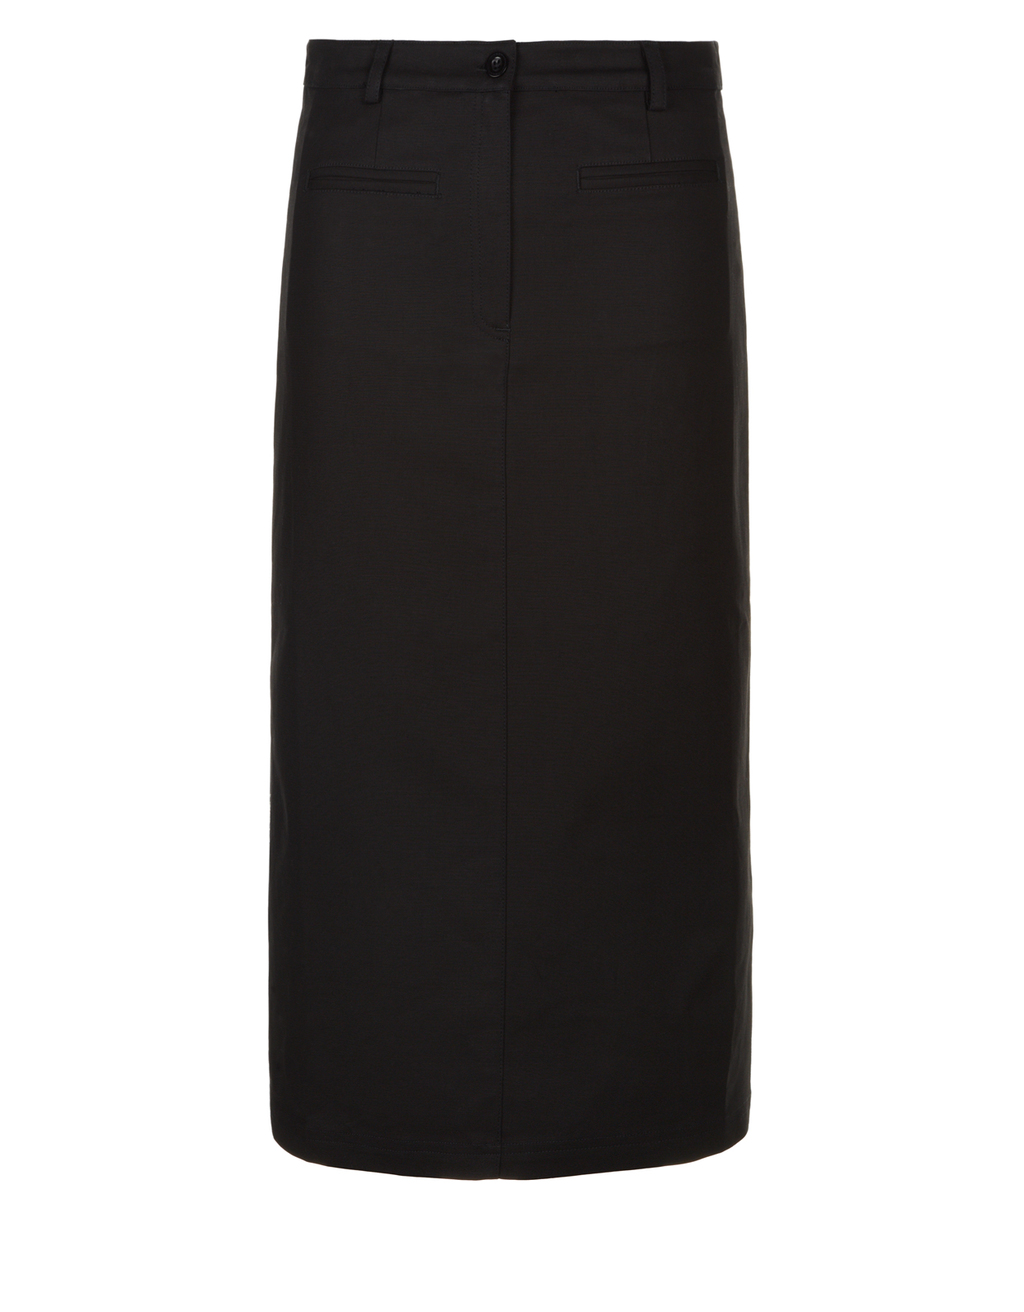 Layla Skirt - pattern: plain; length: ankle length; fit: body skimming; waist: mid/regular rise; predominant colour: black; occasions: casual; style: maxi skirt; fibres: cotton - 100%; texture group: cotton feel fabrics; pattern type: fabric; season: s/s 2016; wardrobe: basic